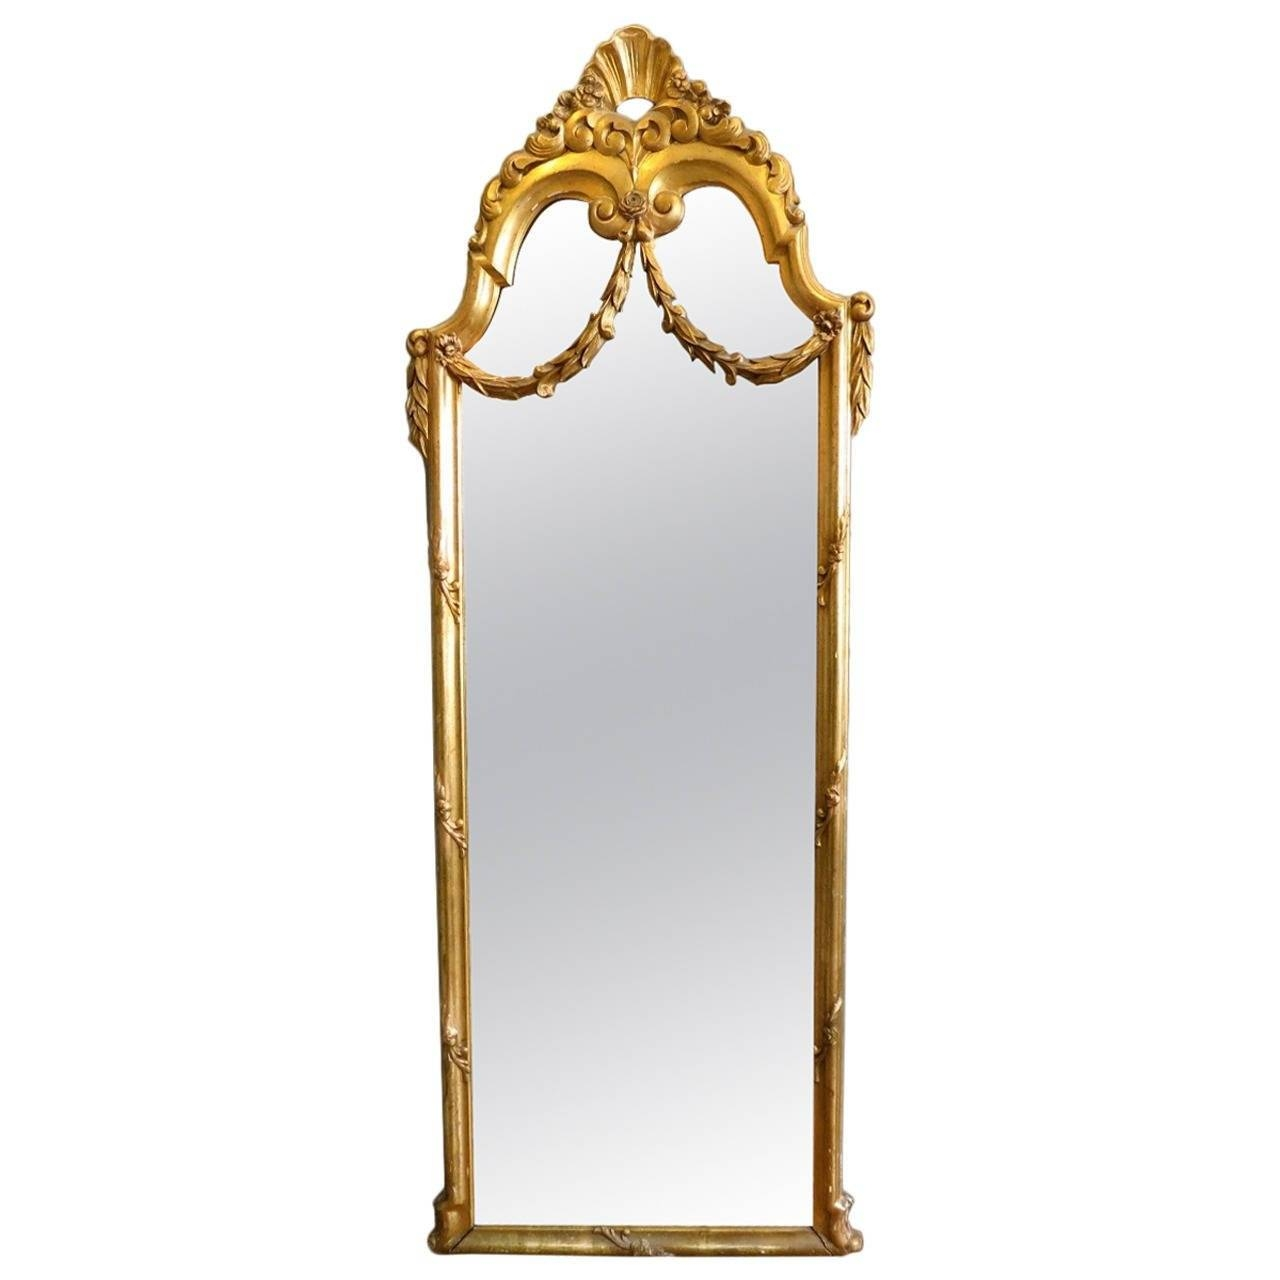 Antique French Gold Gilt Floor Standing Mirror At 1Stdibs Intended For Antique Free Standing Mirrors (Gallery 11 of 25)